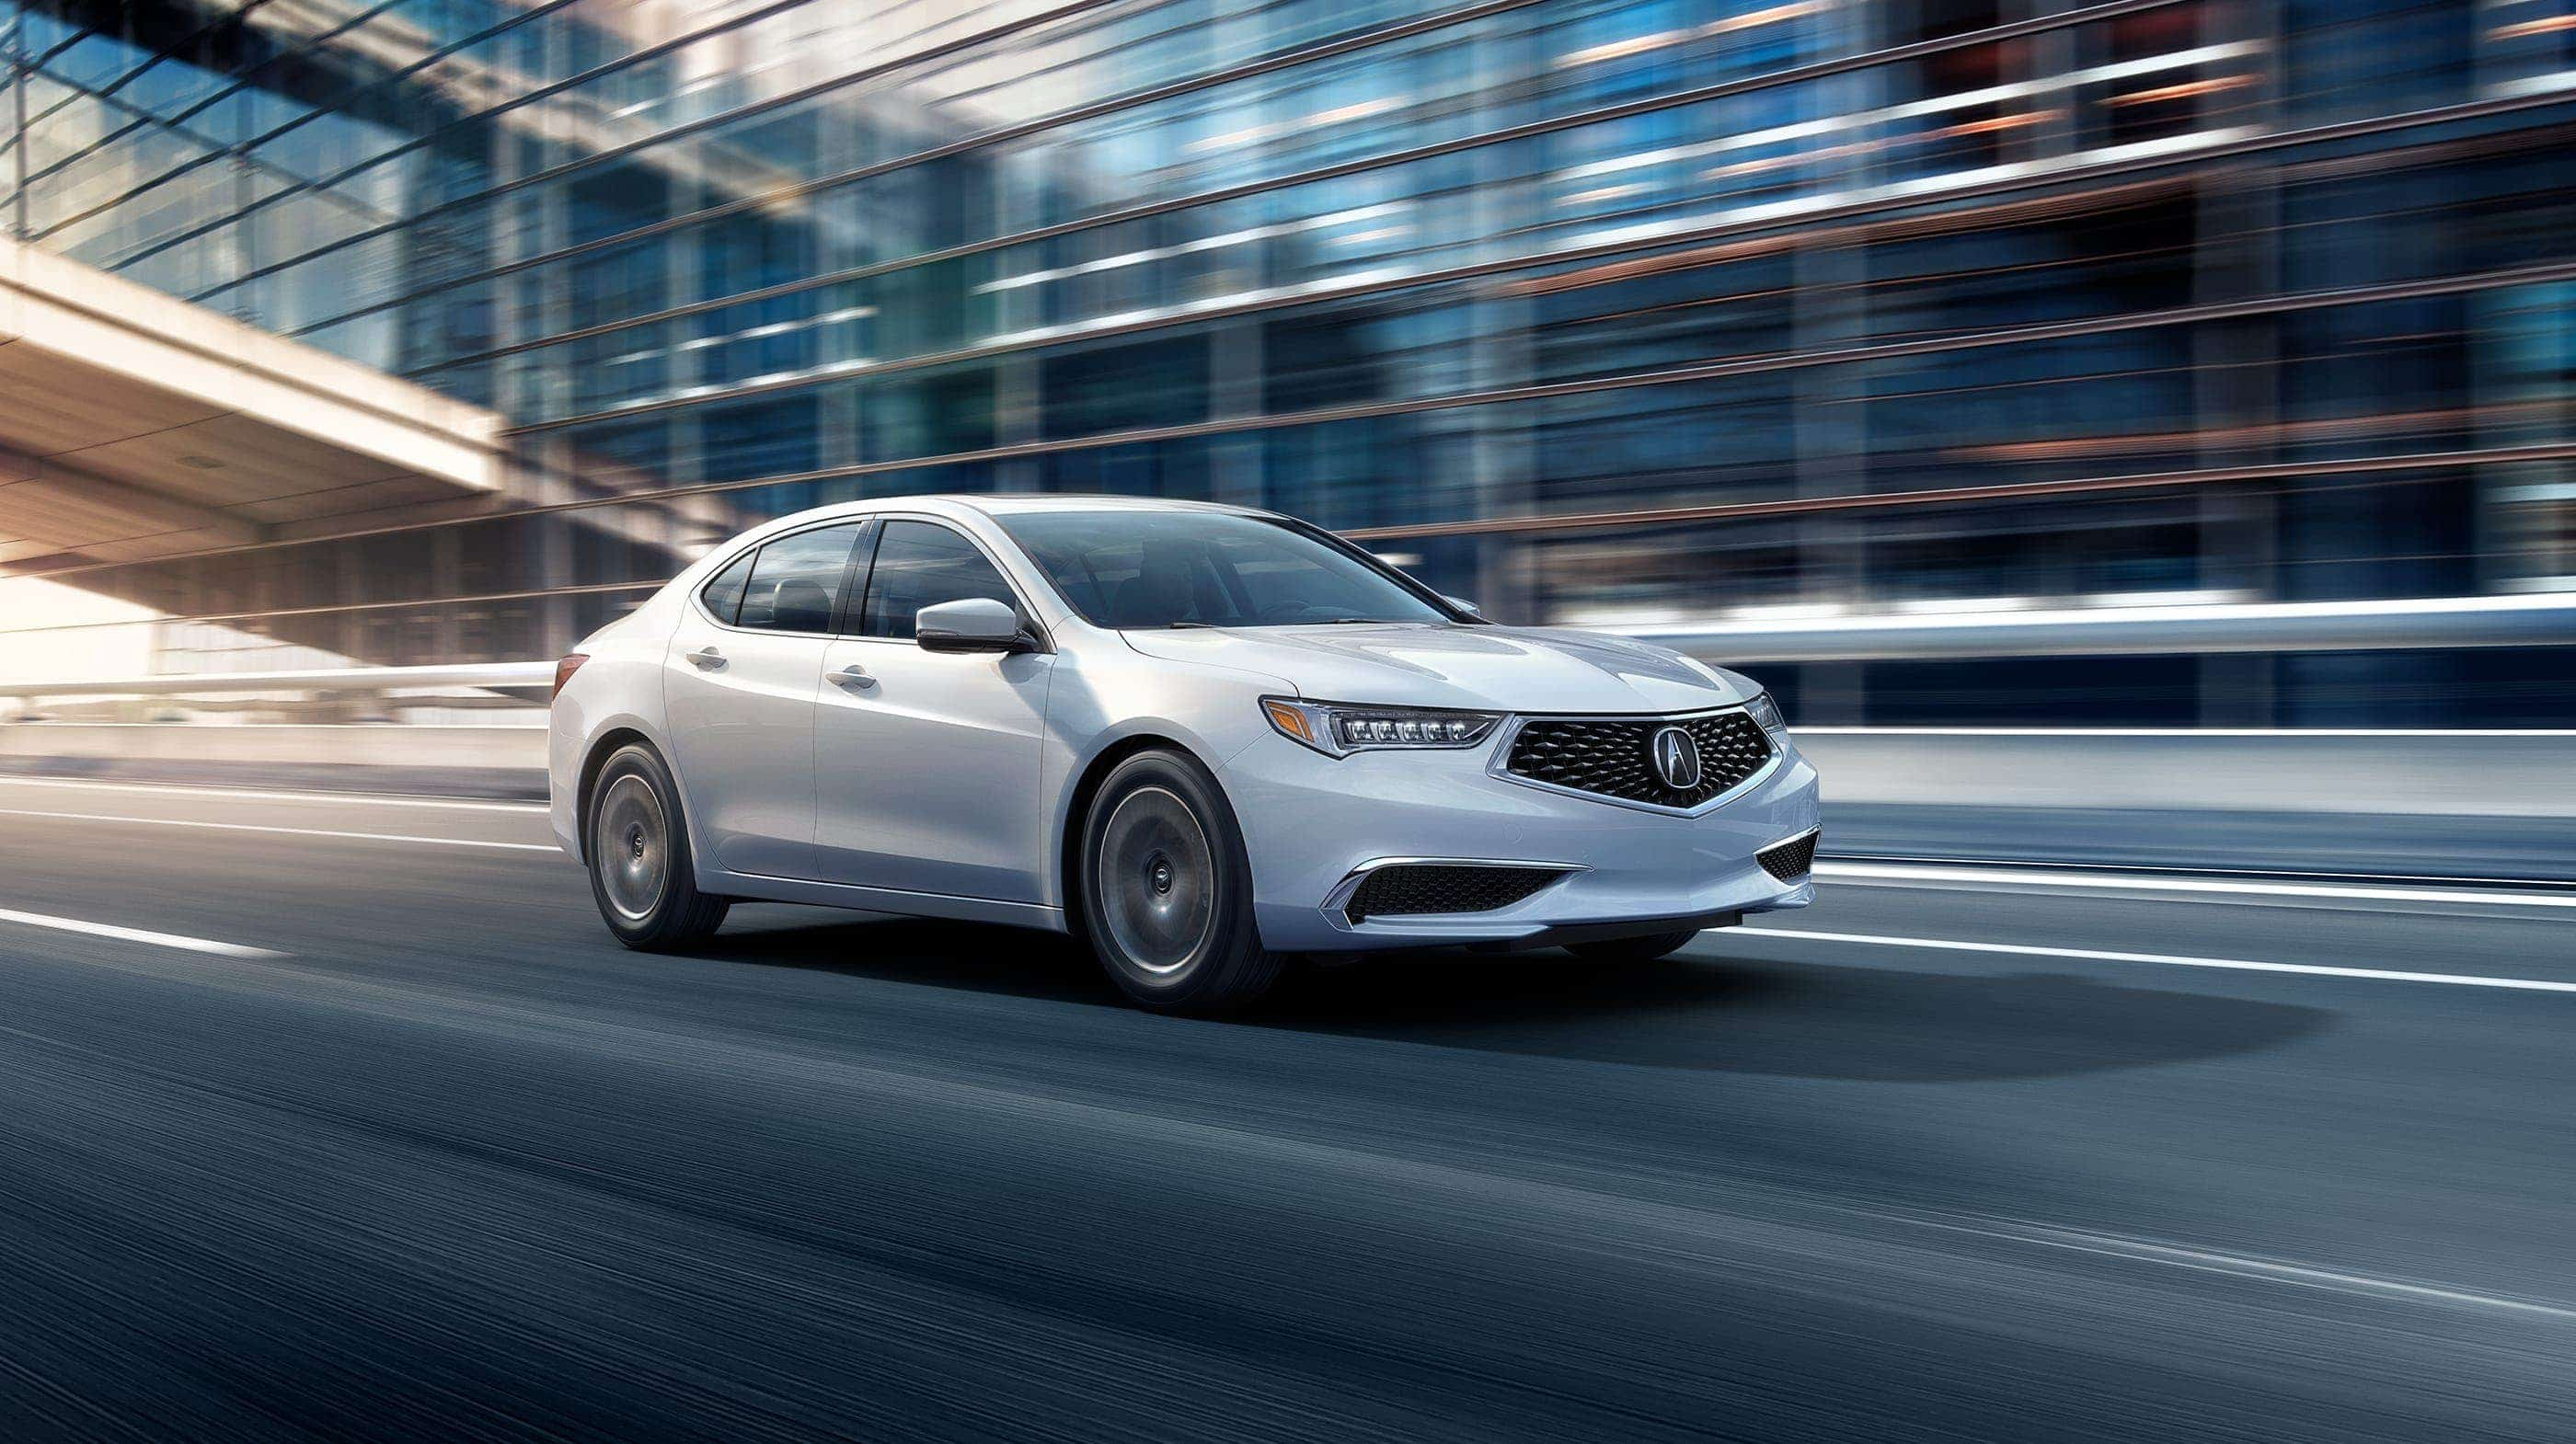 2019 Acura TLX Front White Exterior